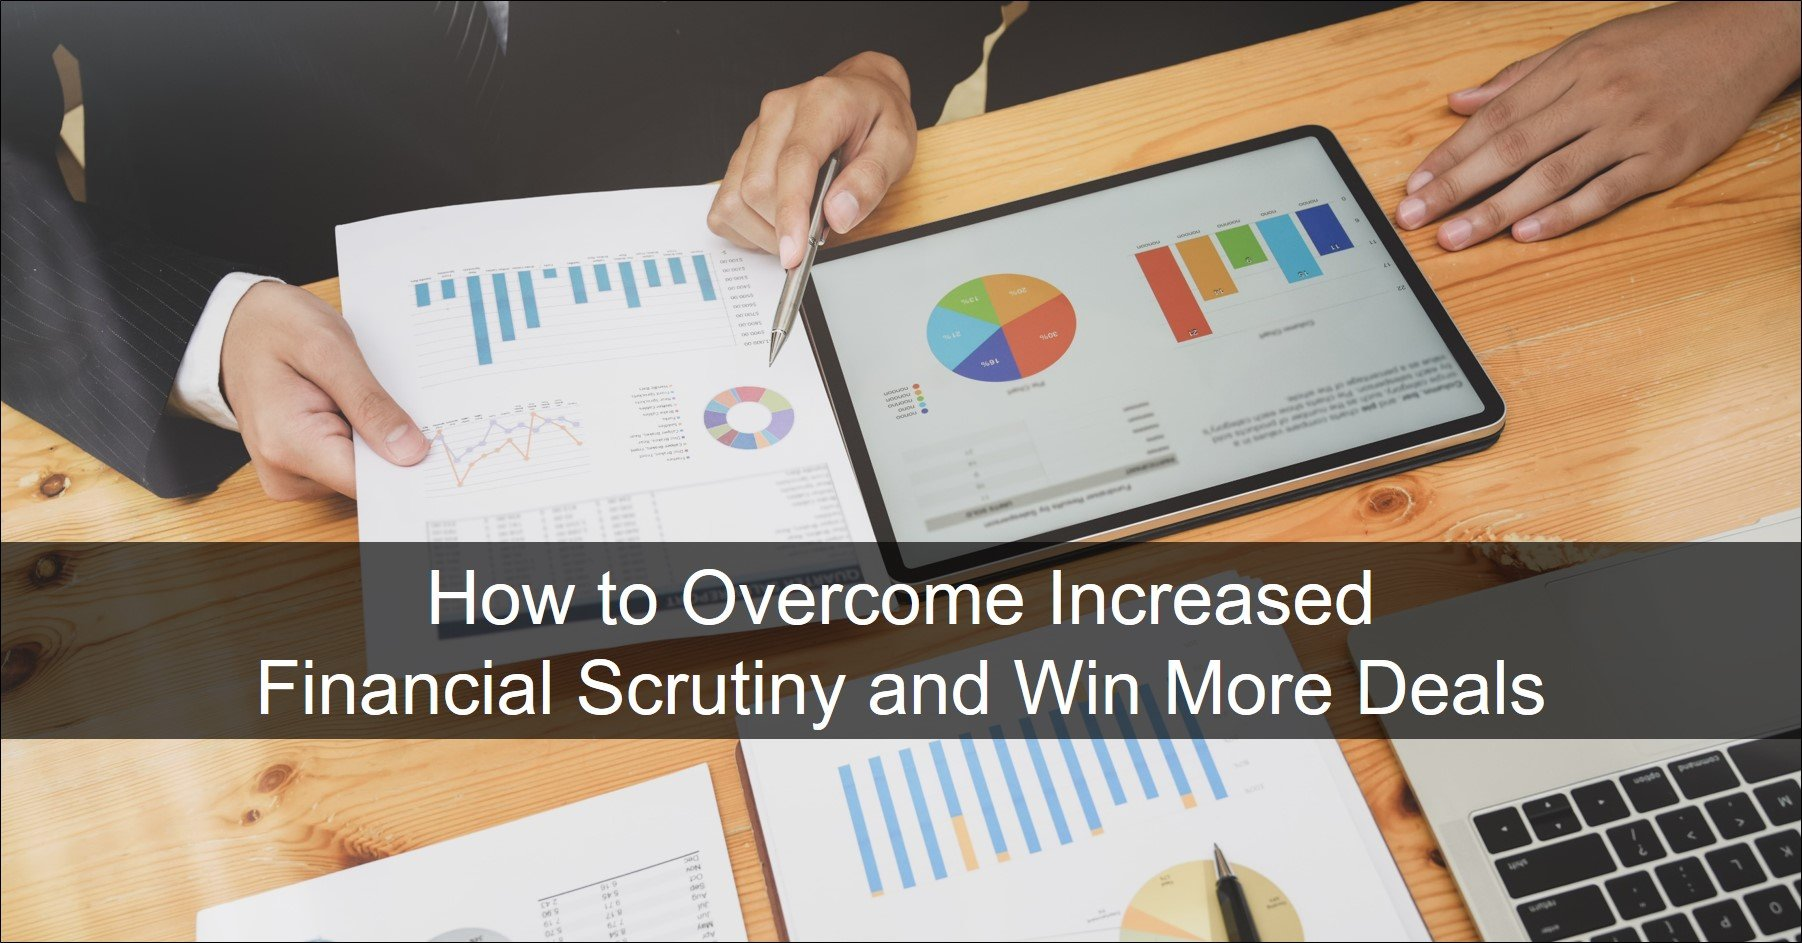 How to Overcome Increased Financial Scrutiny and Win More Deals